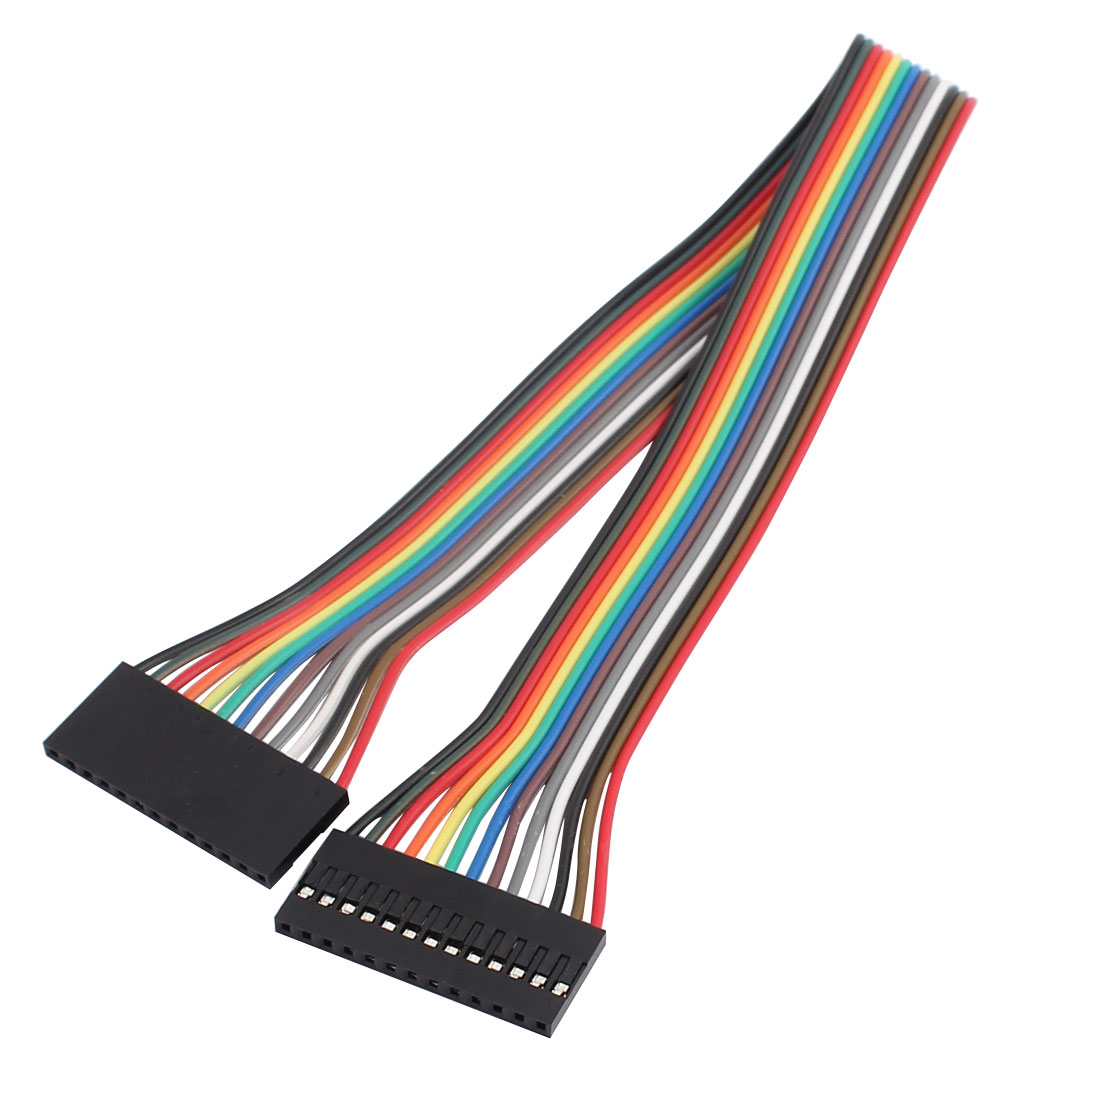 13P Jumper Wires Double Female Head Ribbon Cables Pi Pic Breadboard 31cm Long